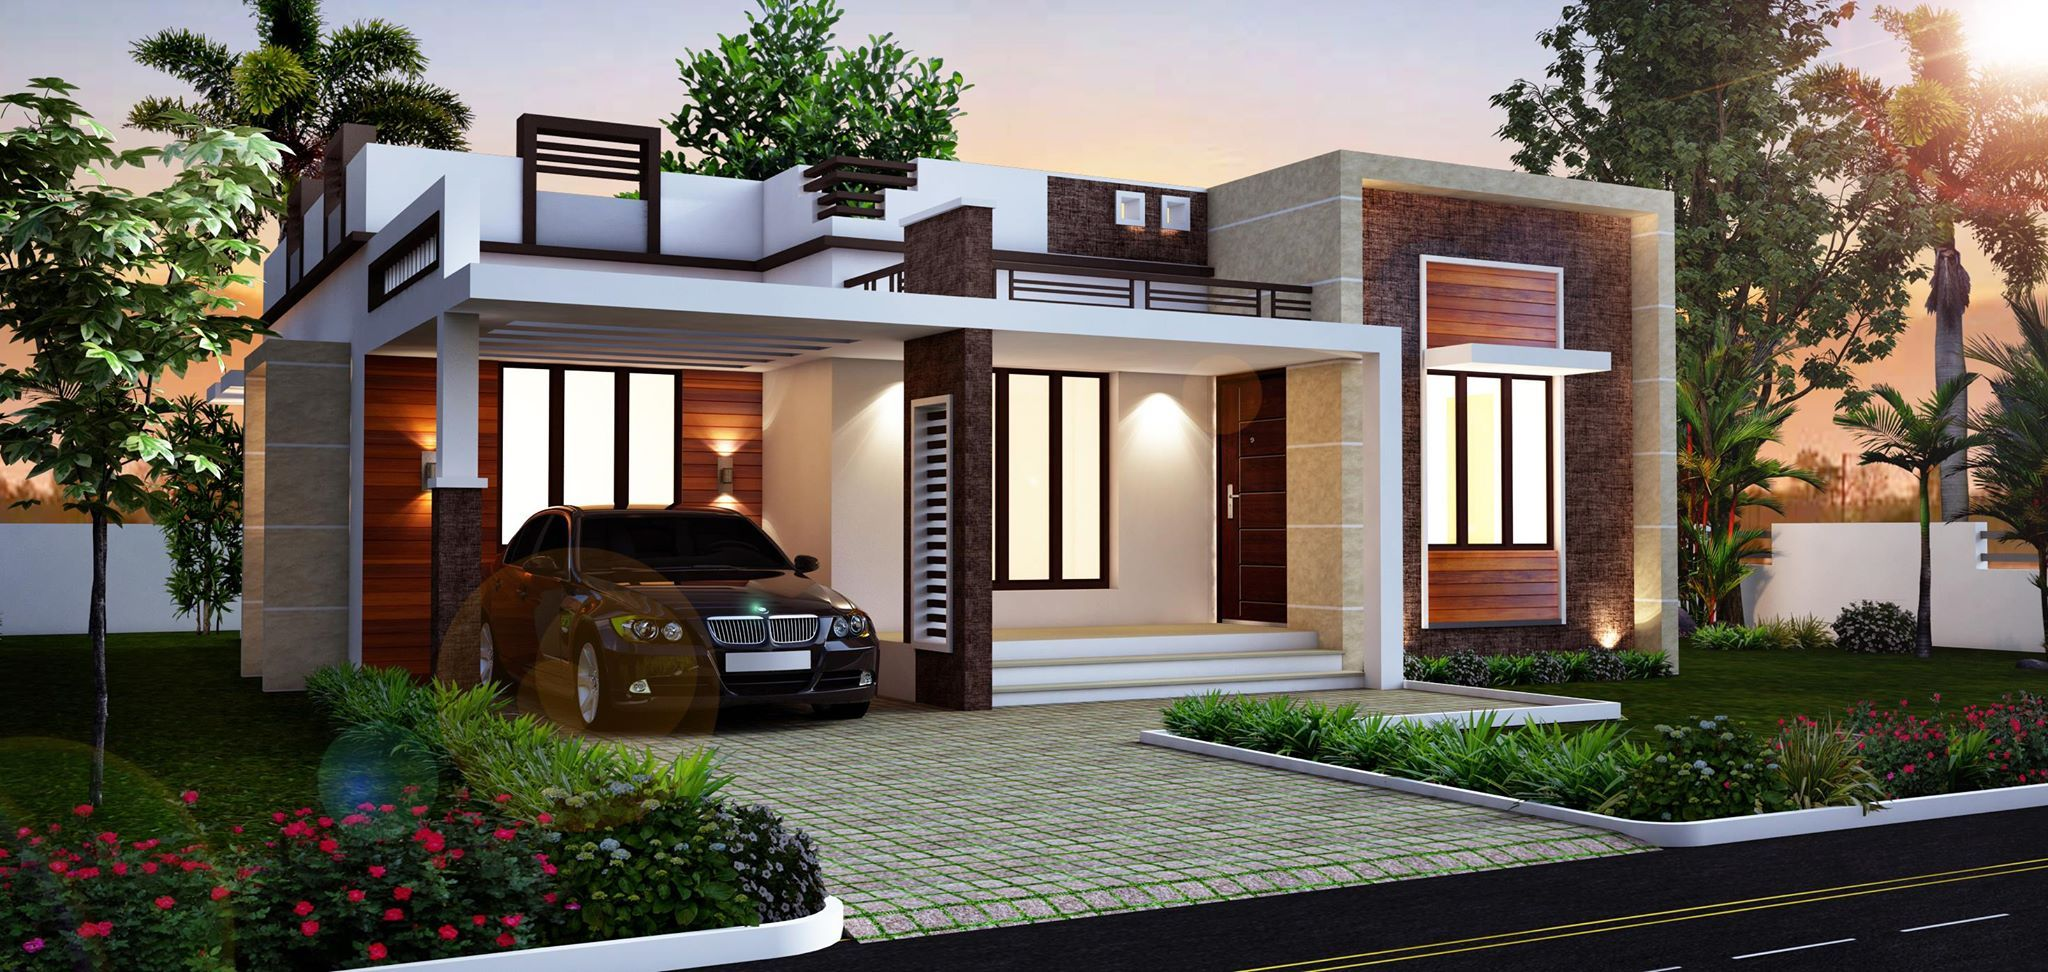 courtyard designs kerala - Google Search | Kerala house ...